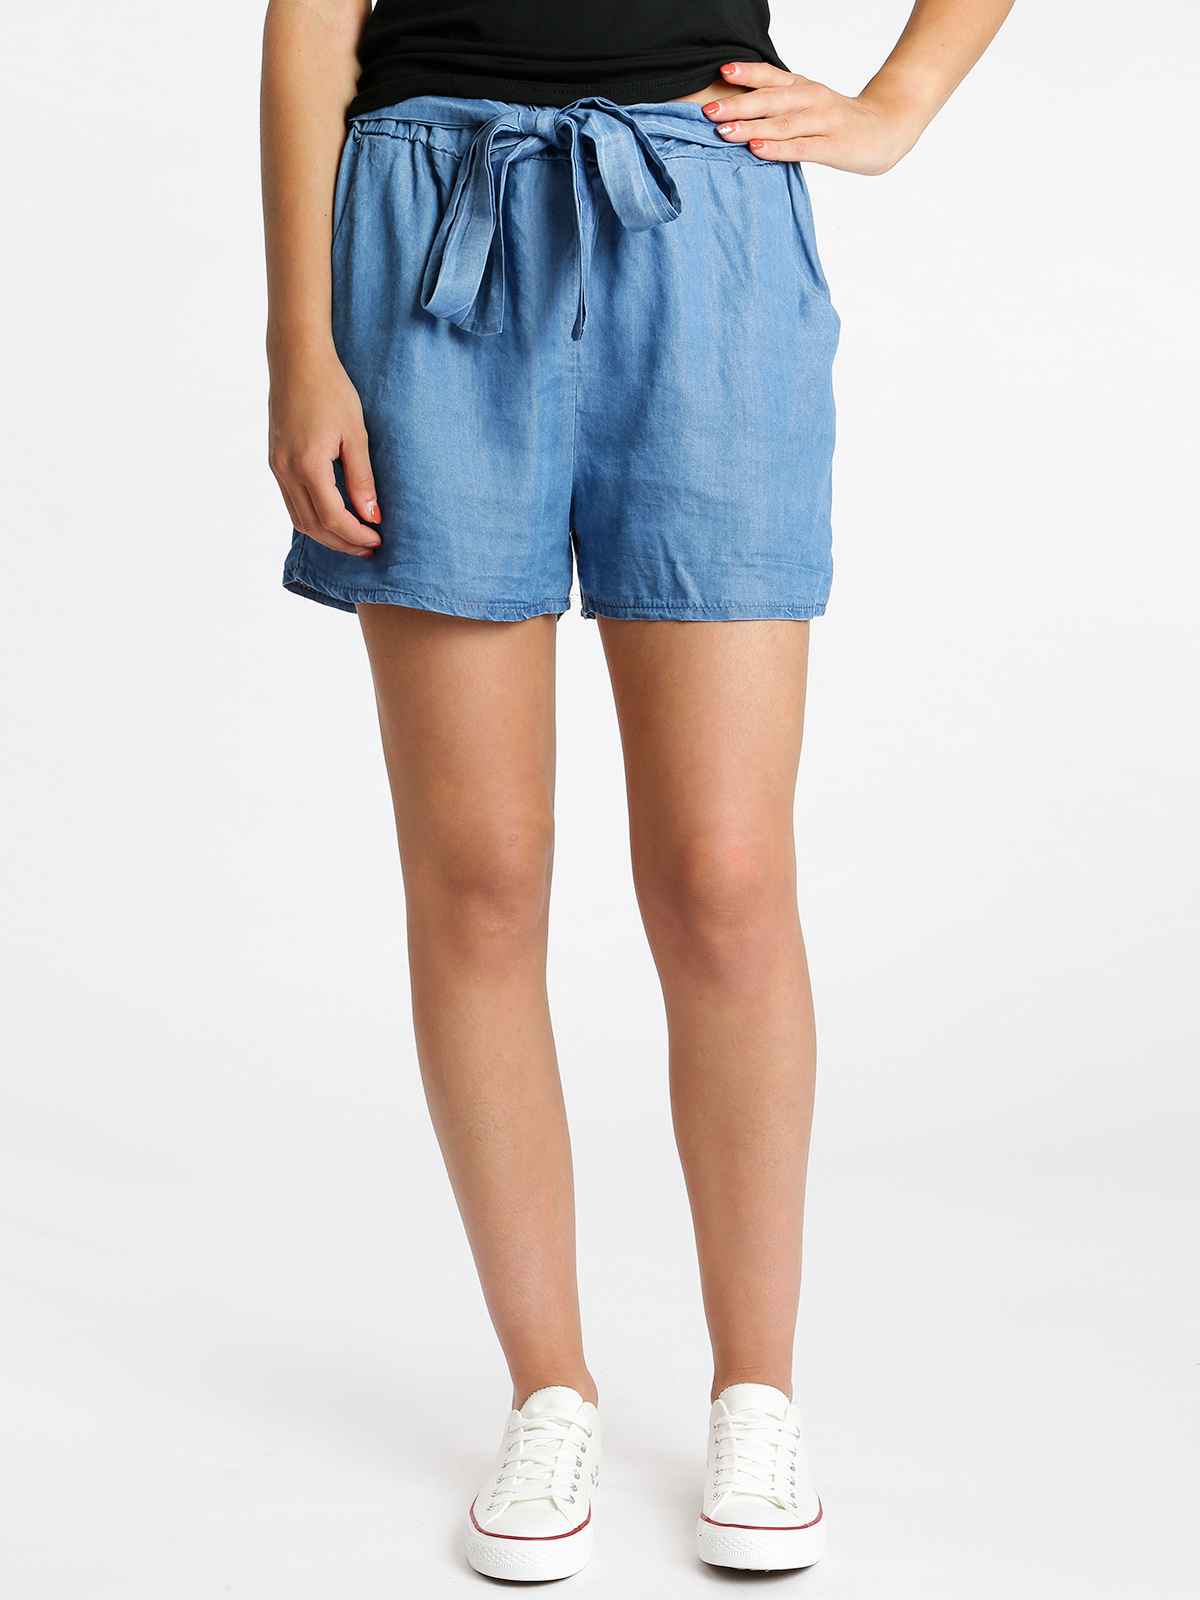 Shorts Light Fancy Jeans